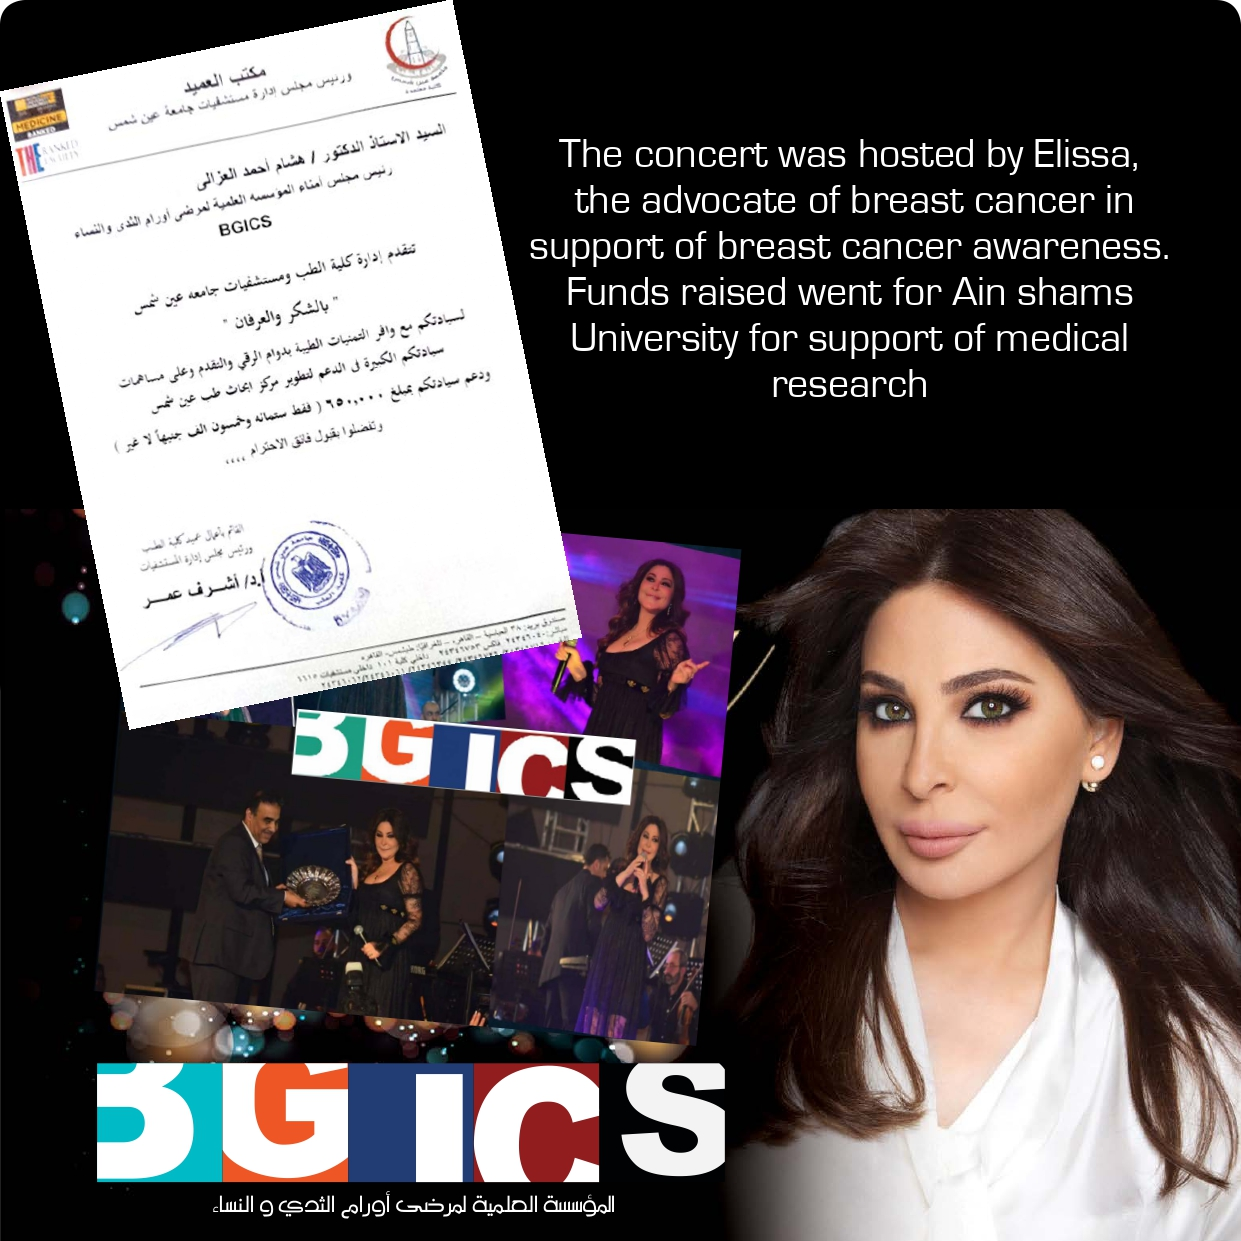 Elissa by hosted was concert T